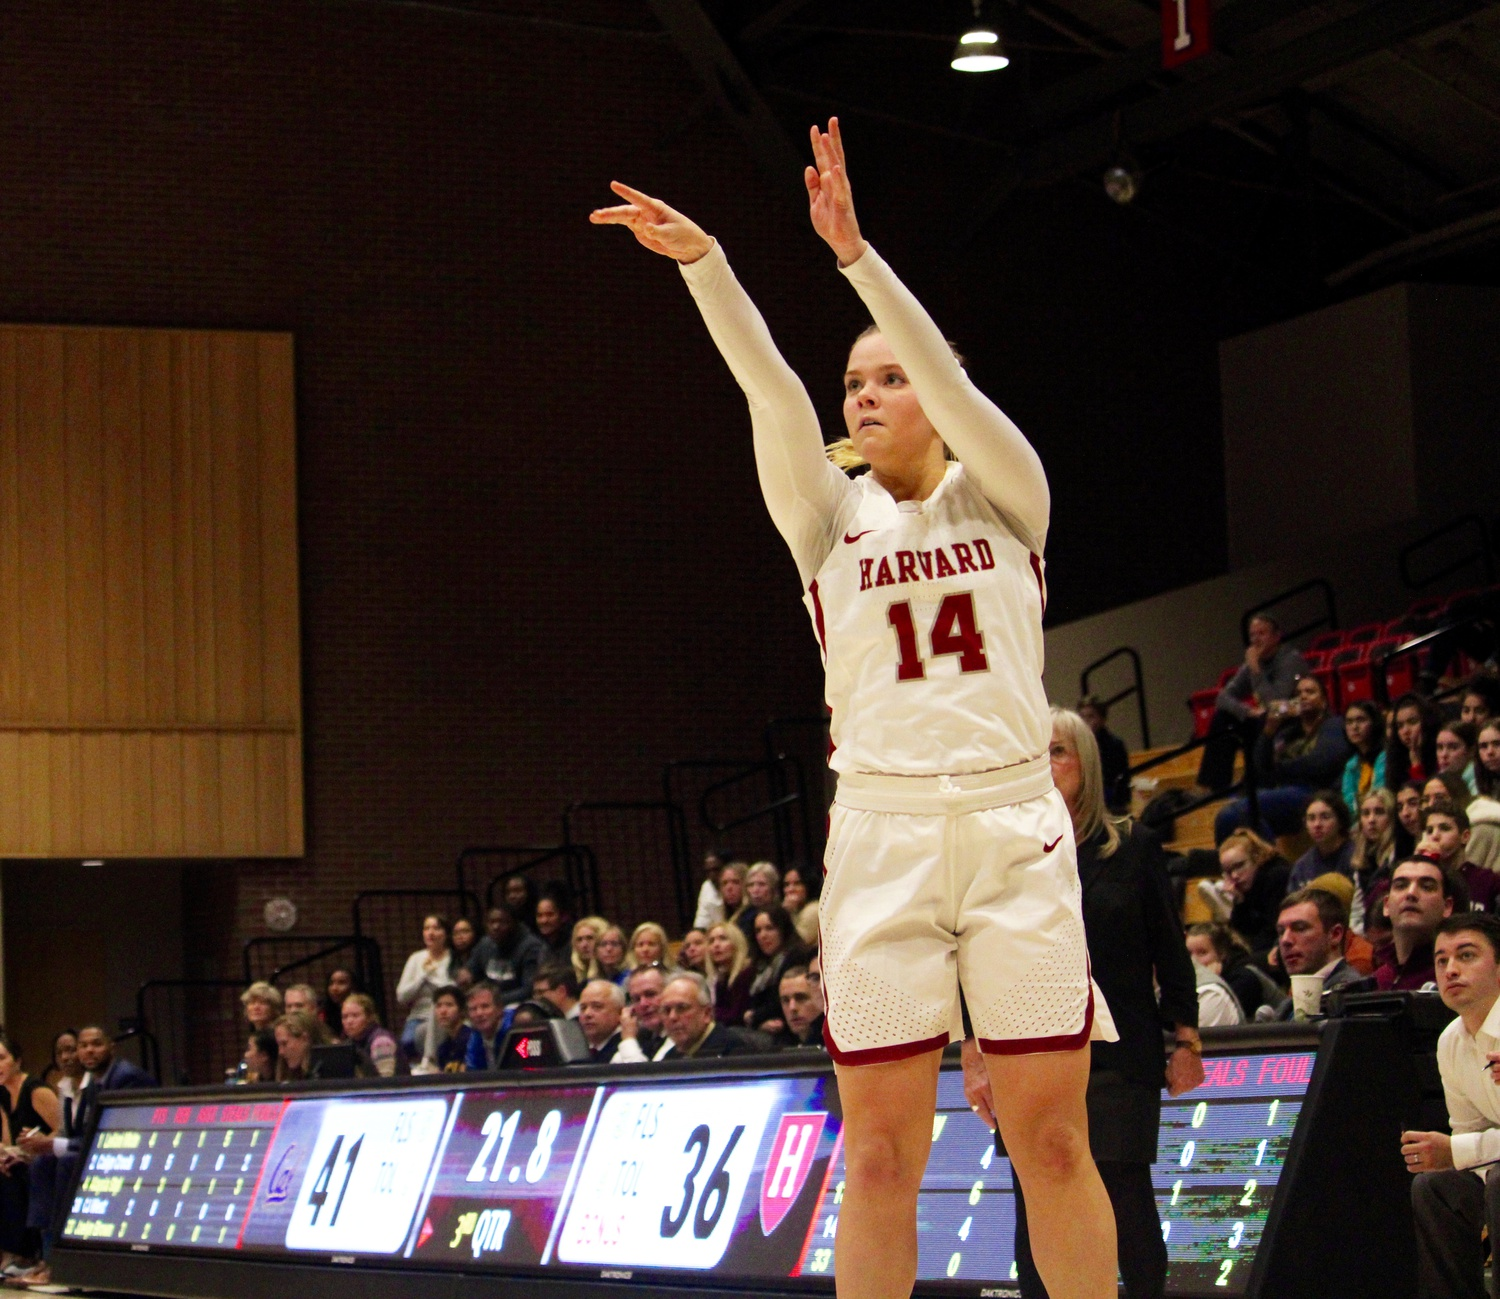 Captain Mackenzie Barta contributed a double-double with 10 points and 12 boards.